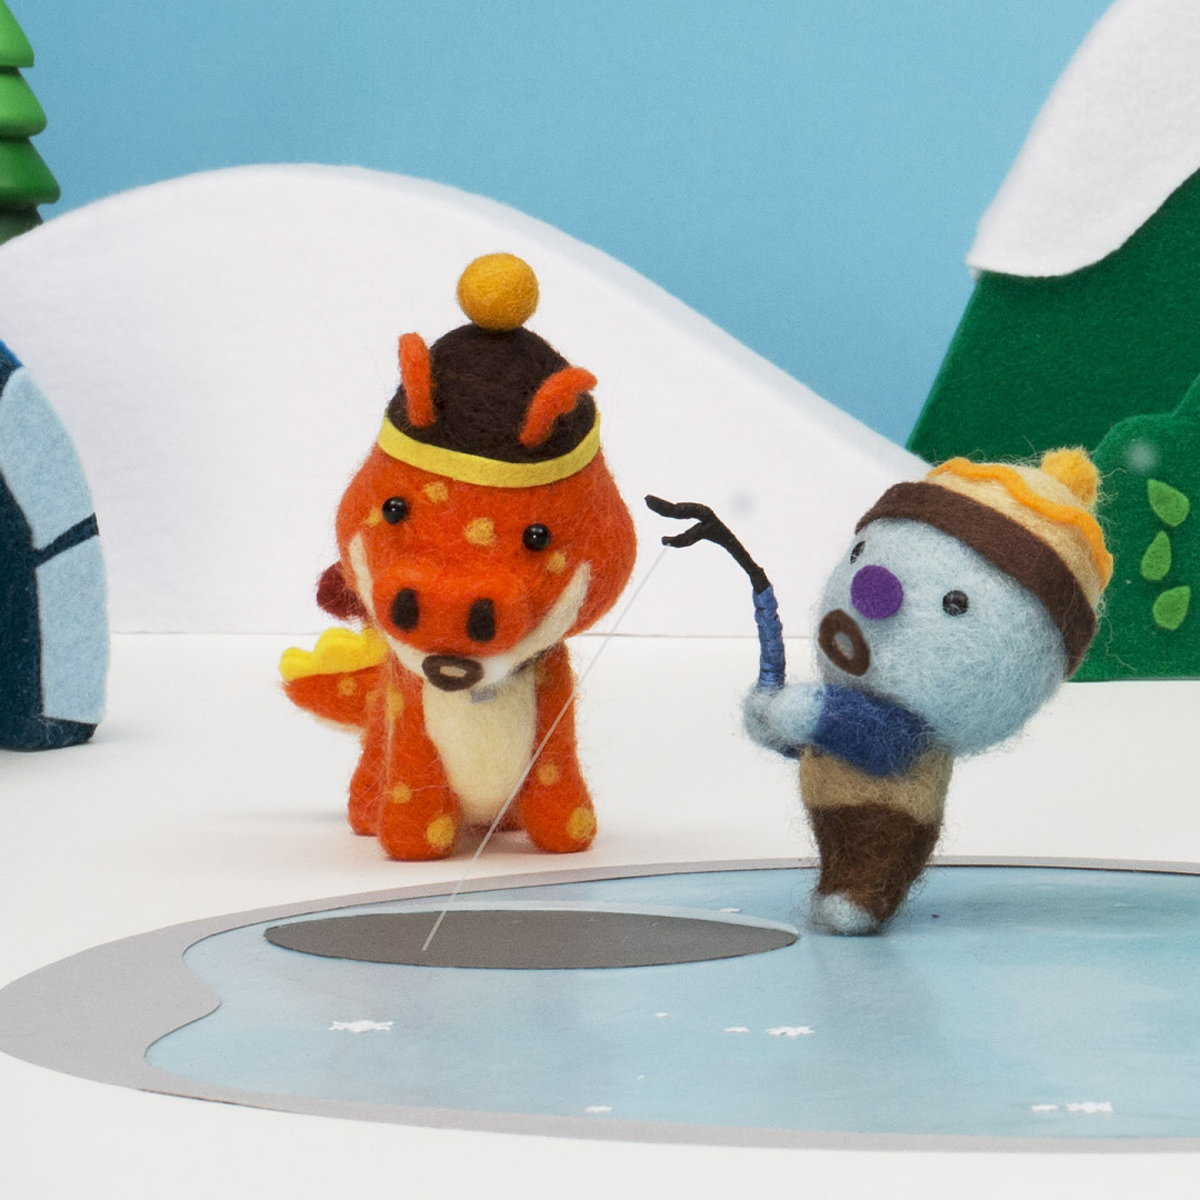 Houses in Motion Teams with Nick Jr. for a Warm and Fuzzy Stop-motion Package